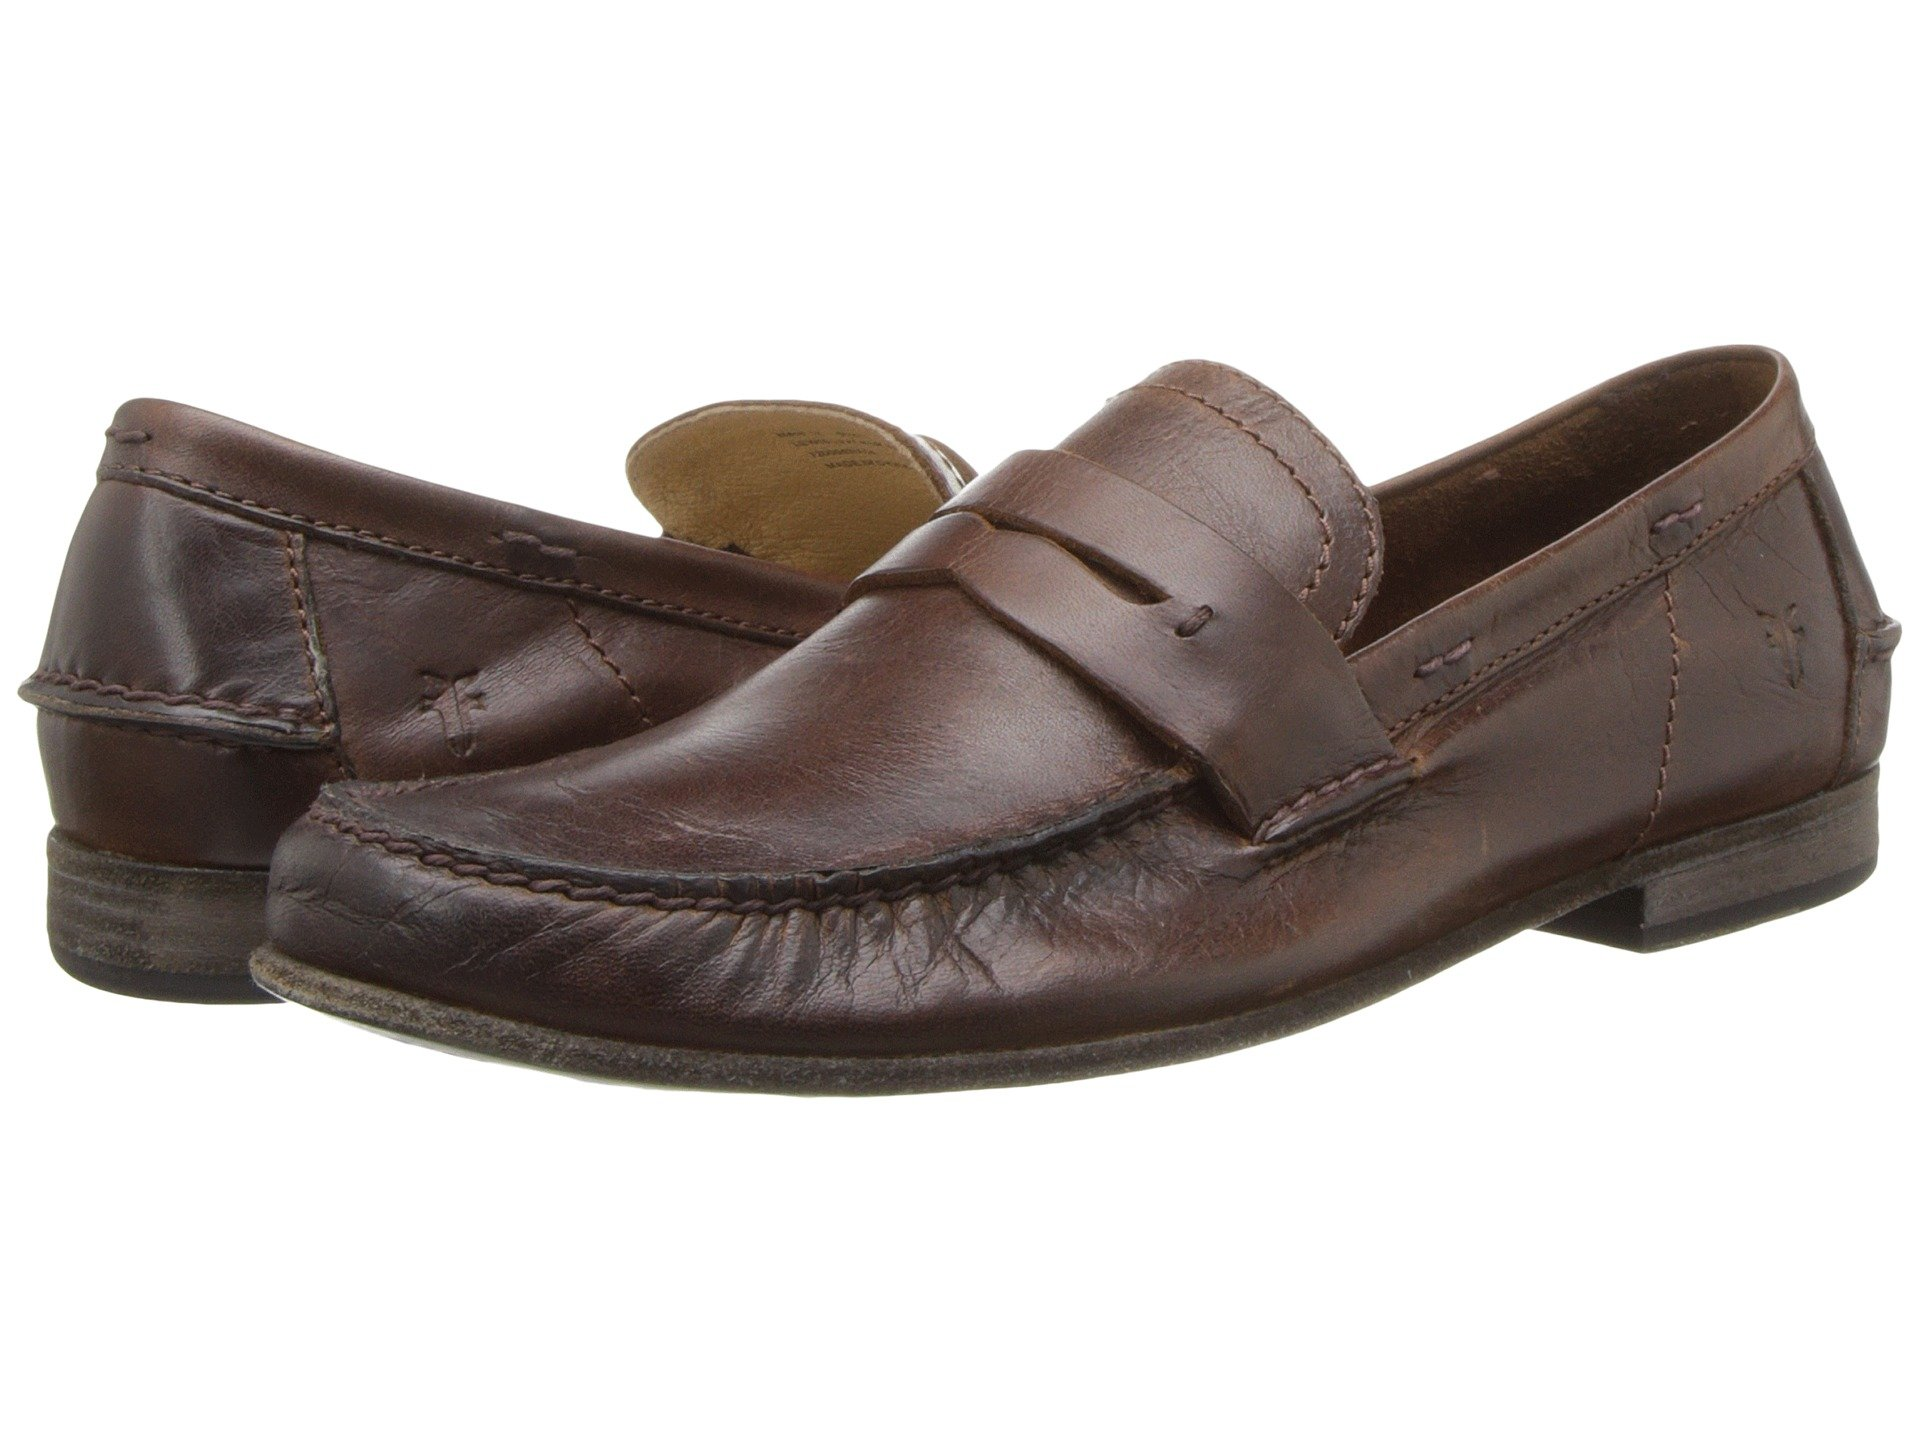 b47dae451d7 FRYE LEWIS LEATHER PENNY